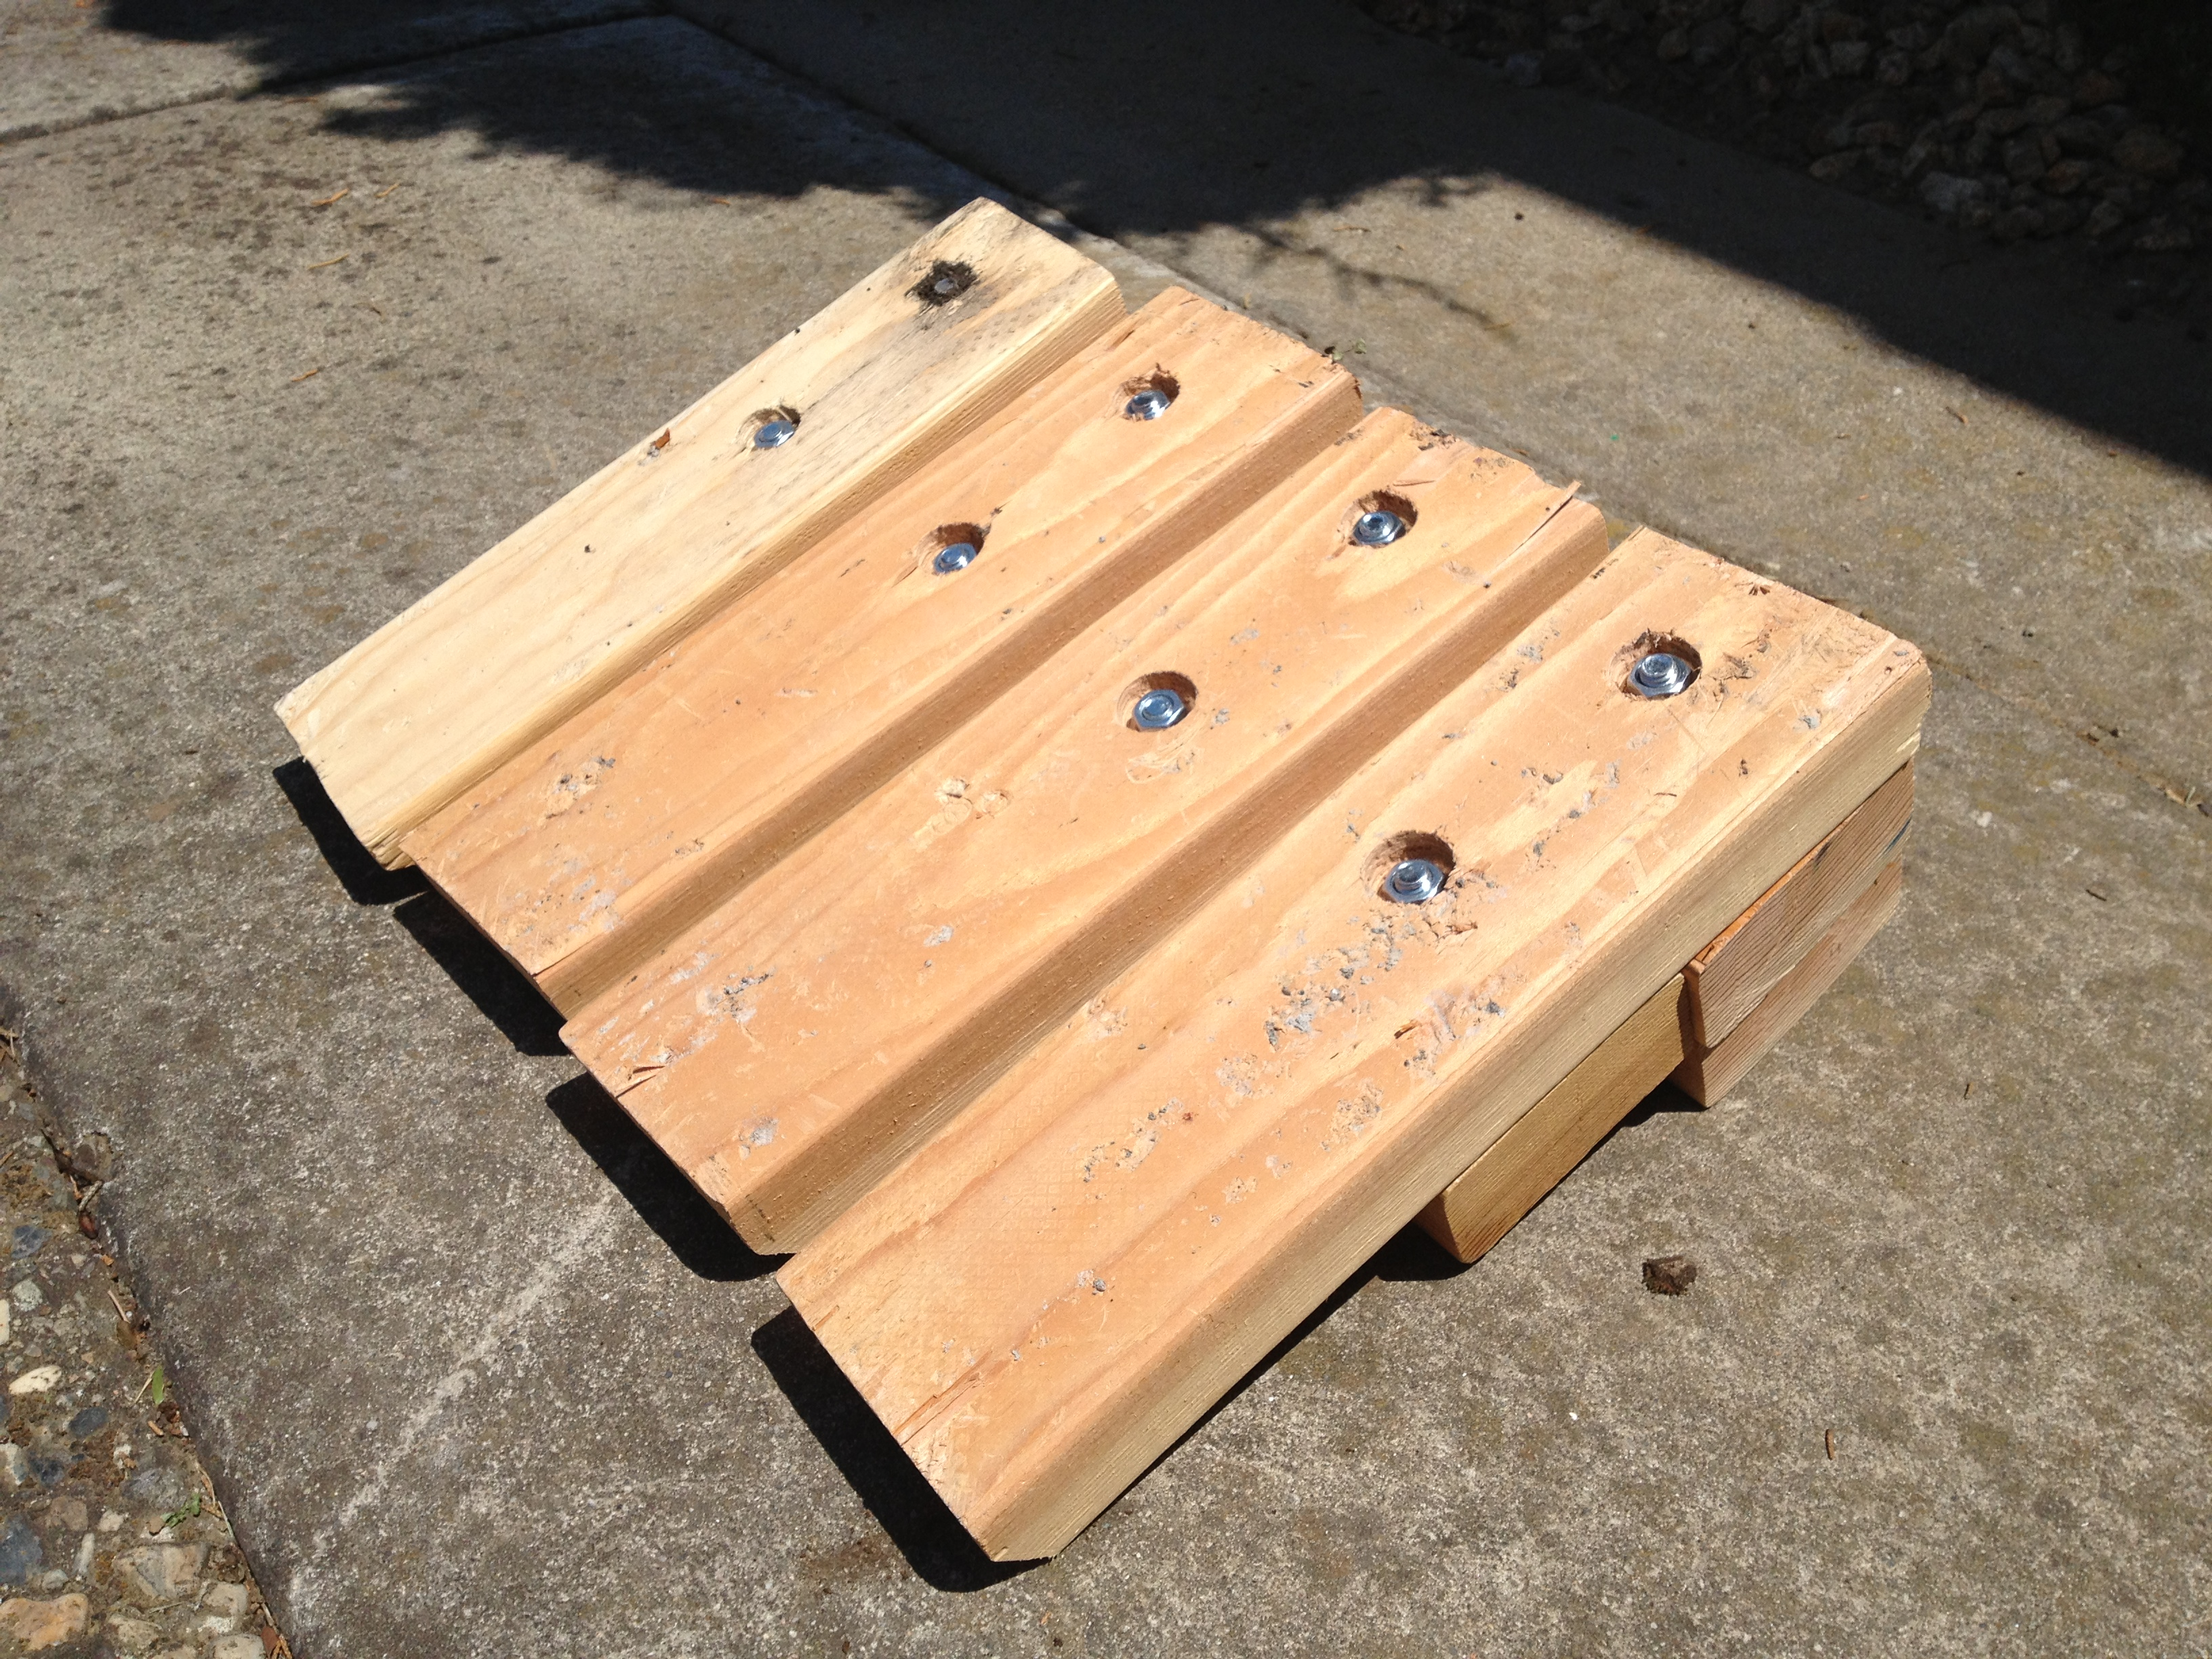 Diy curb ramp for cars learnbyblogging 2013 07 21 125217 solutioingenieria Image collections